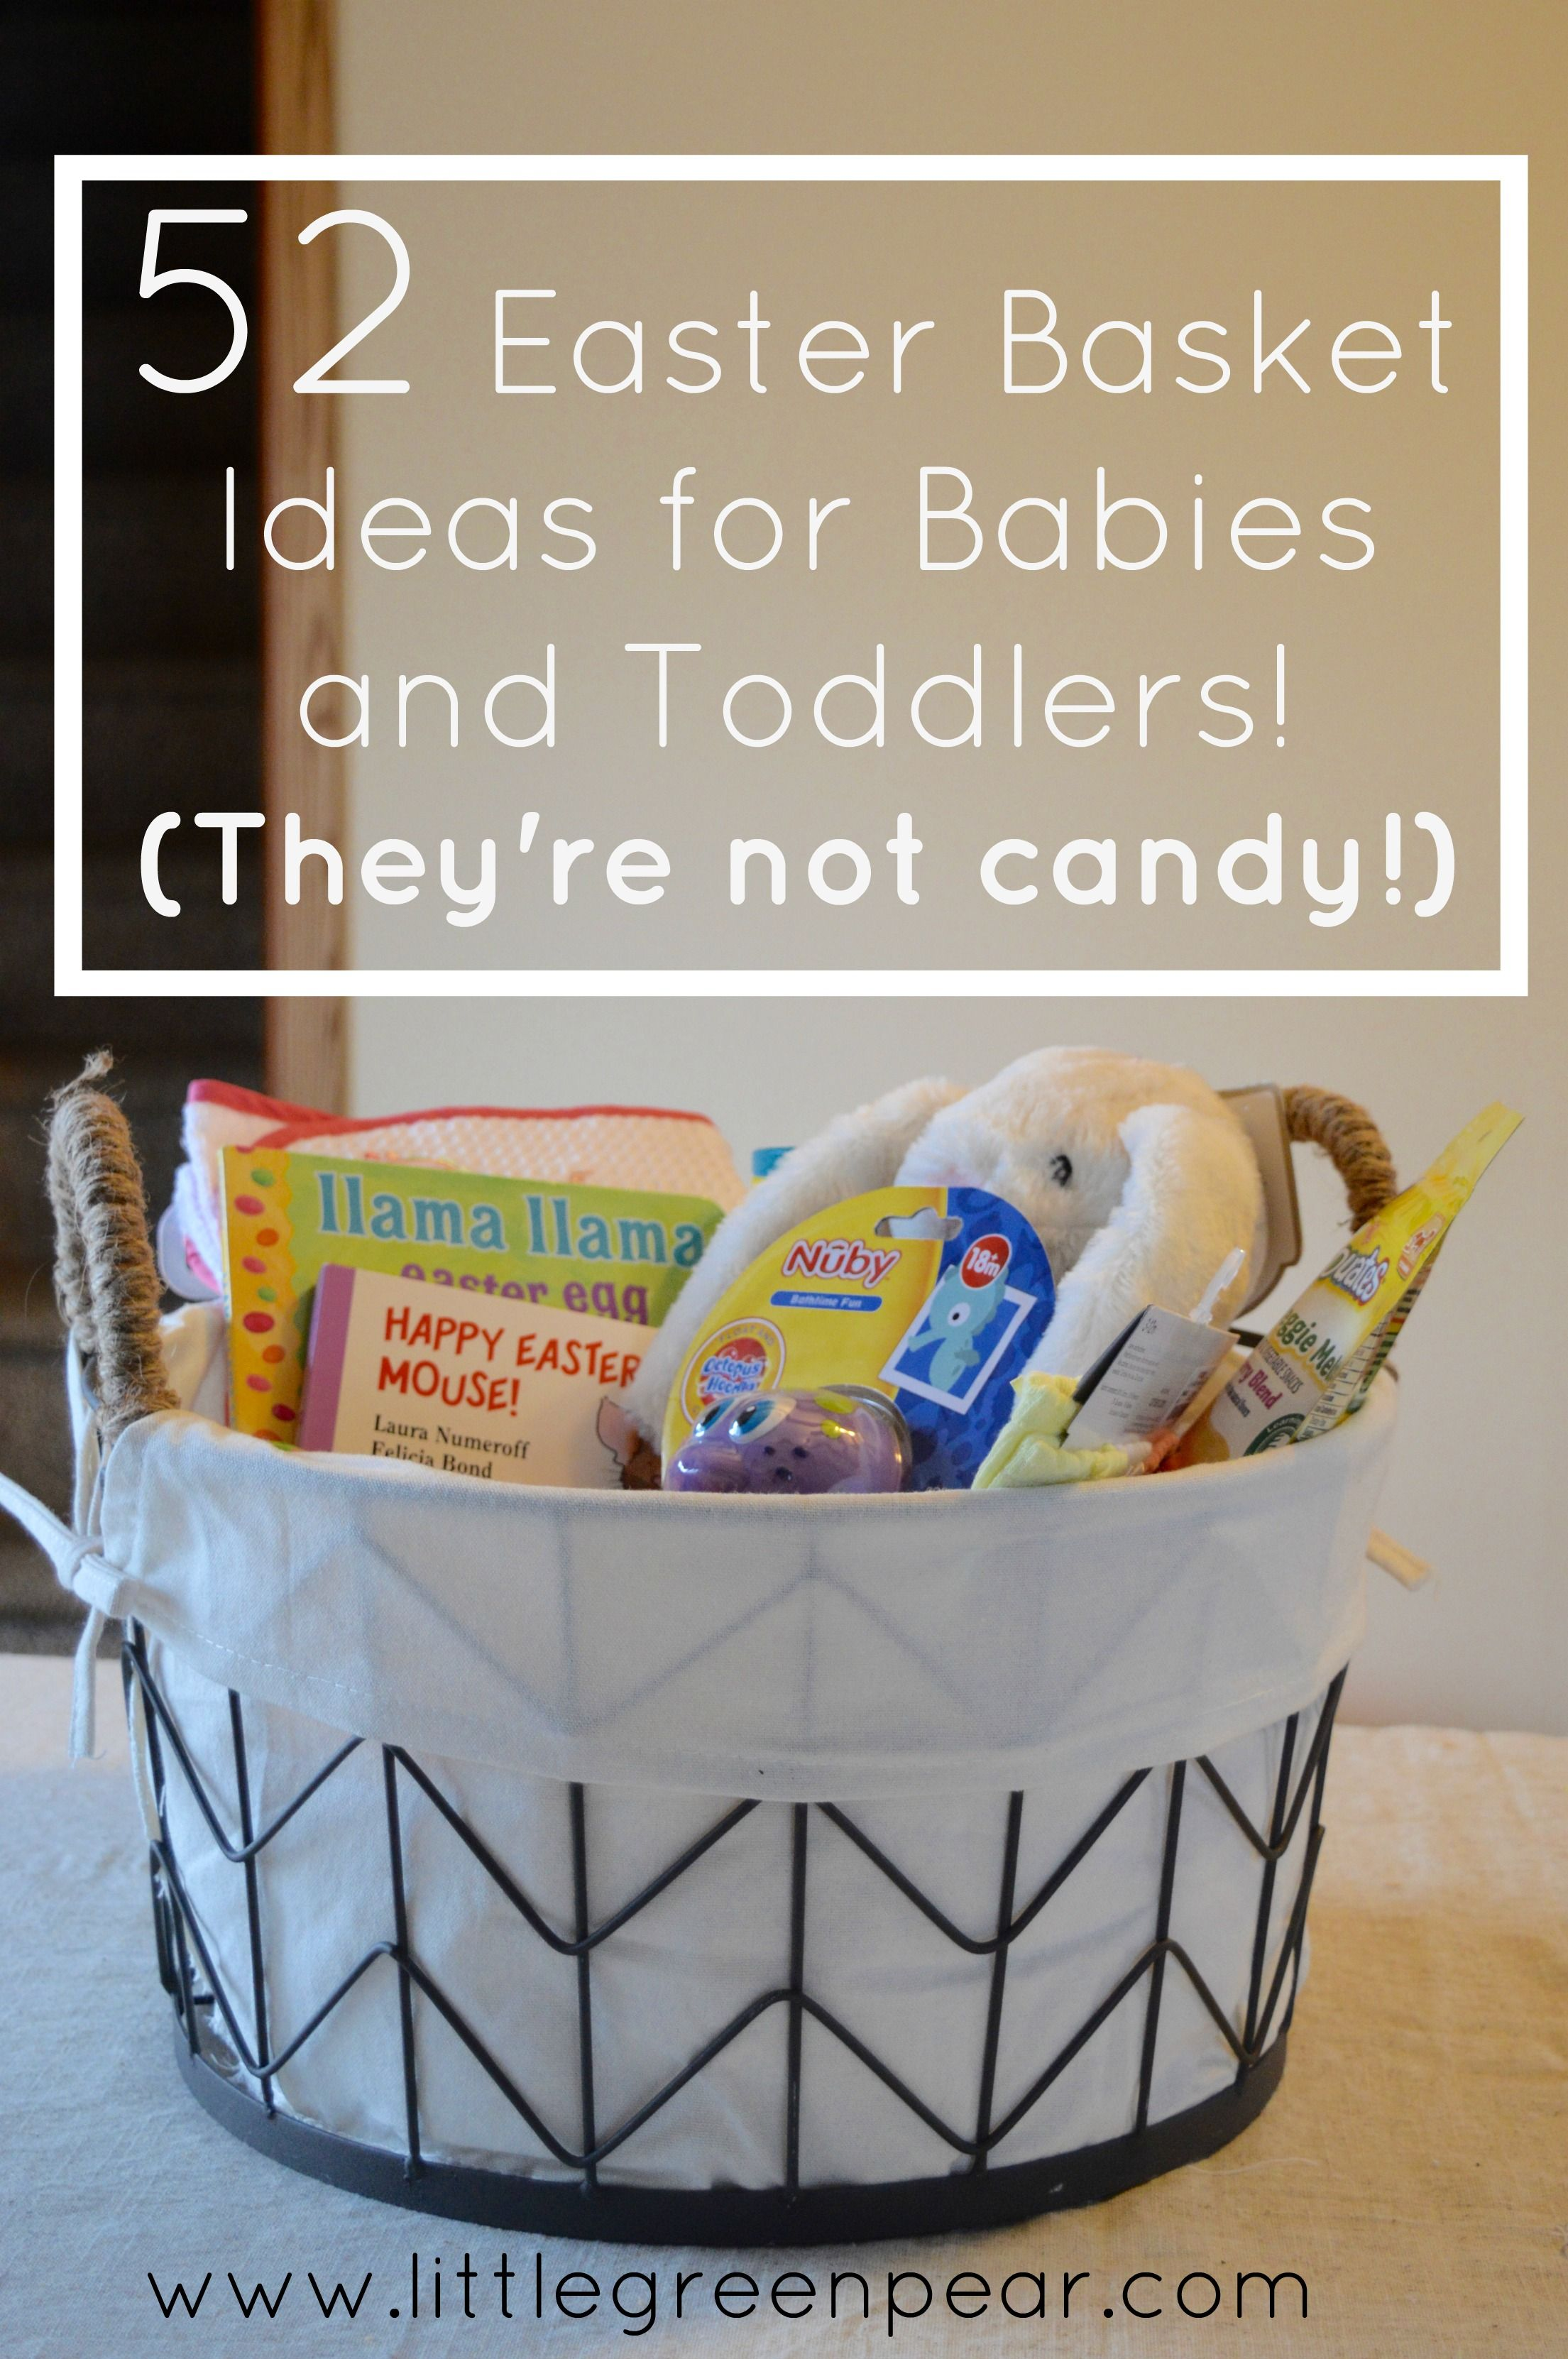 52 Non Candy Easter Basket Ideas For Babies And Toddlers Baby Easter Basket Candy Easter Basket Kids Easter Basket